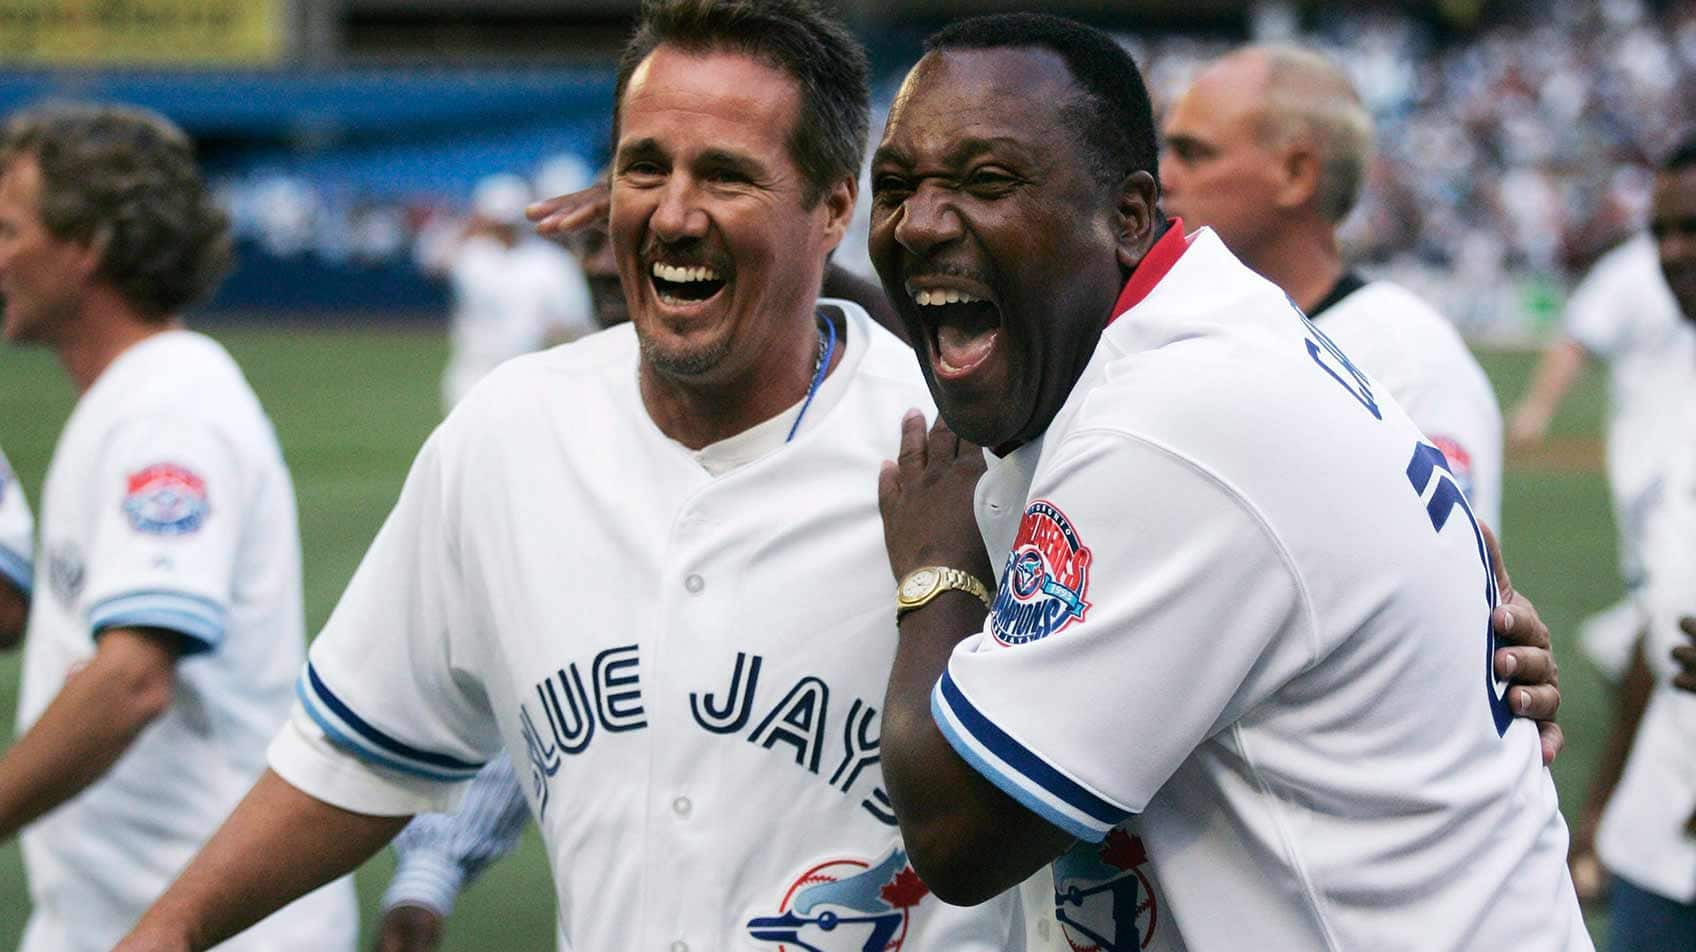 Pat Boarders, left, and Joe Carter share a laugh as they walk off the field after the Toronto Blue Jays World Series team from 1992 and 1993 were celebrated at Rogers Centre